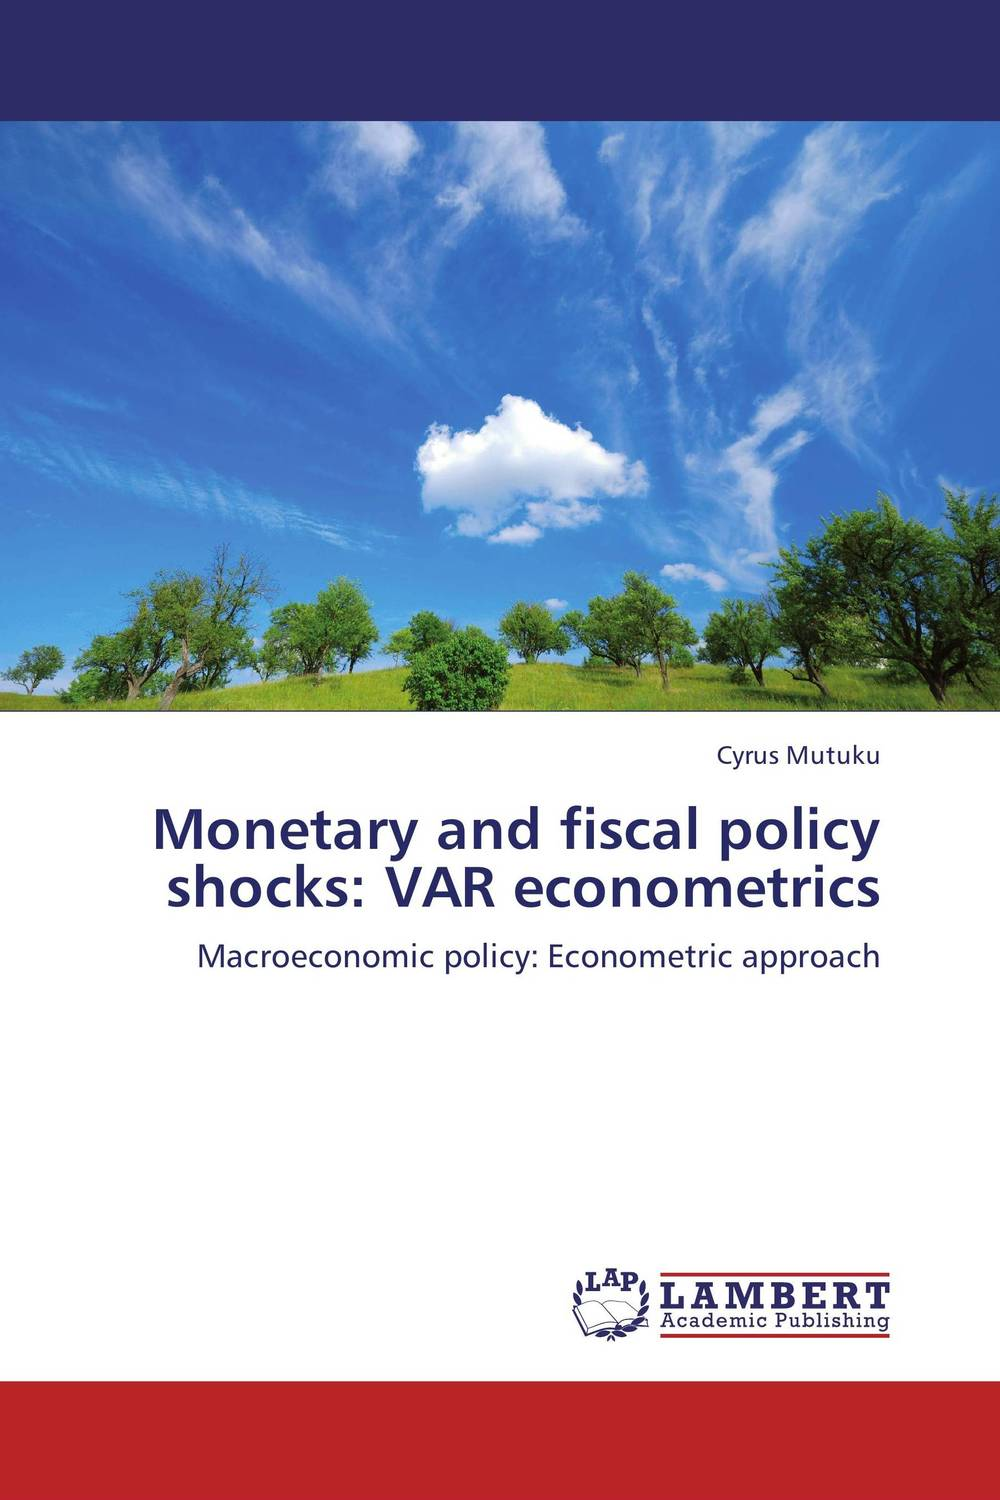 Monetary and fiscal policy shocks: VAR econometrics arcade ndoricimpa inflation output growth and their uncertainties in south africa empirical evidence from an asymmetric multivariate garch m model